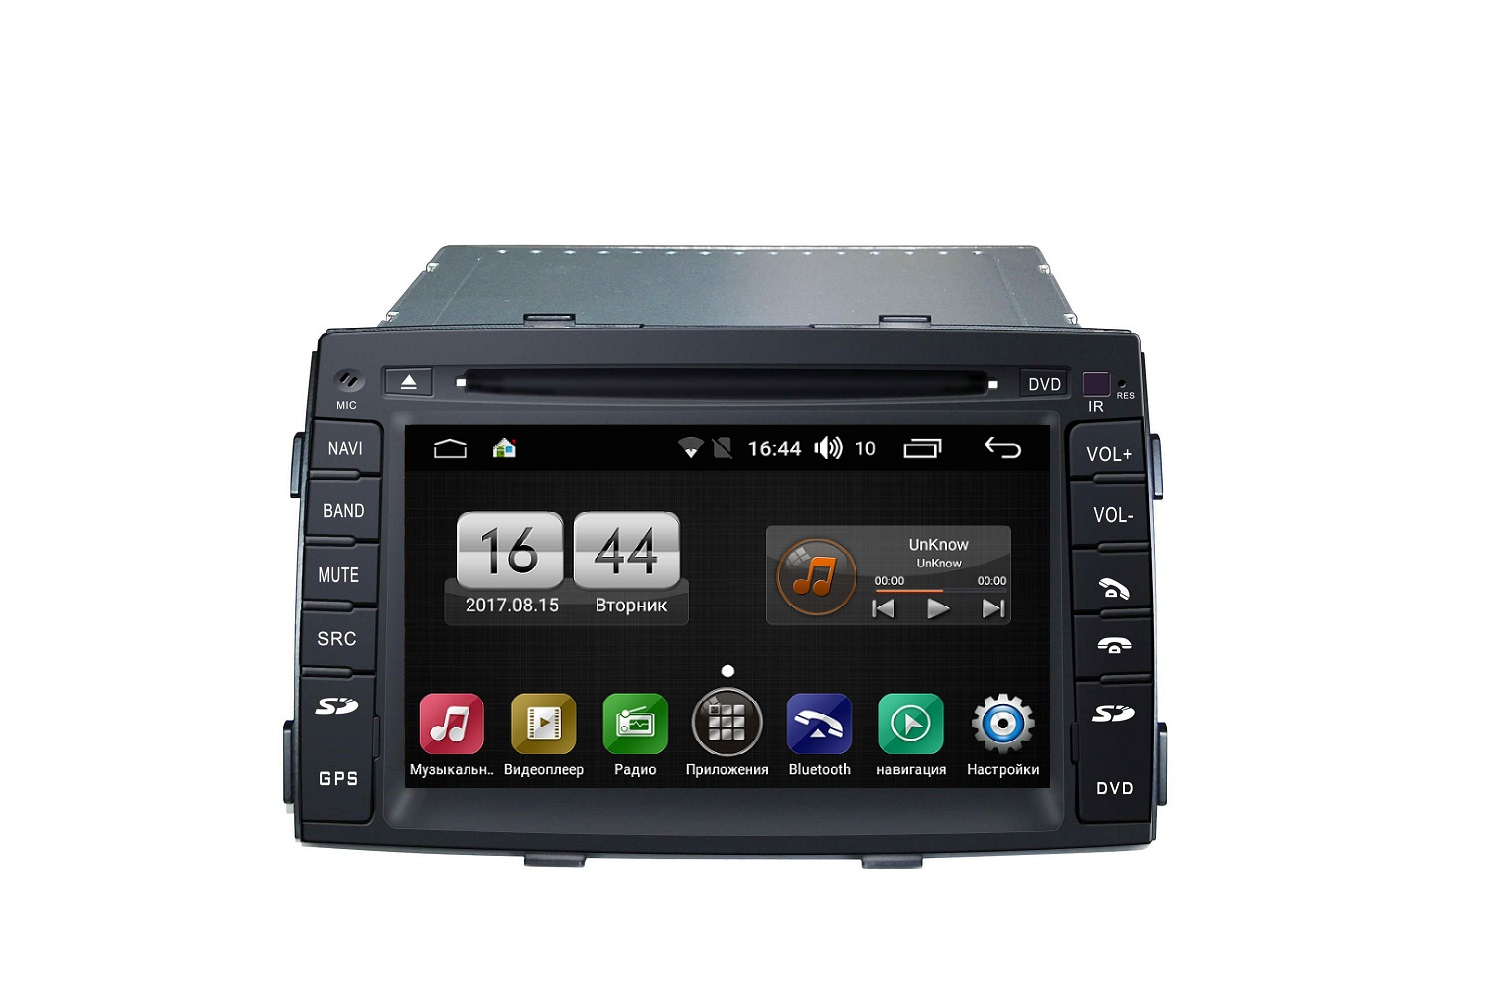 Штатная магнитола FarCar s170 для KIA Sorento на Android (L041) rungrace rl 470agnr universal 8 inch tft screen car dvd player android 4 2 2 support bluetooth gps rds fm am for kia sorento